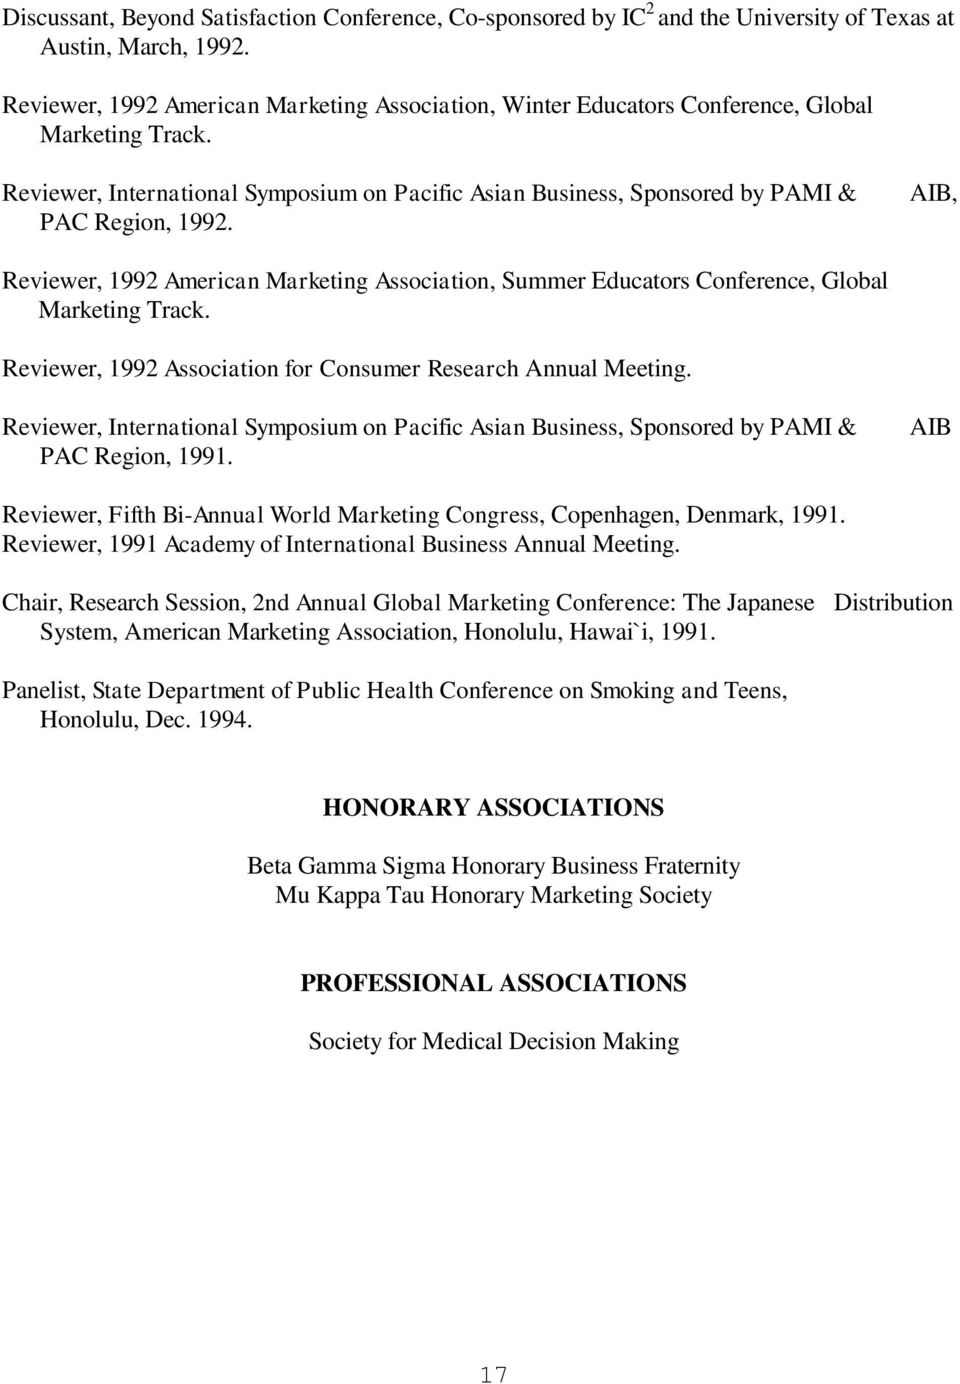 AIB, Reviewer, 1992 American Marketing Association, Summer Educators Conference, Global Marketing Track. Reviewer, 1992 Association for Consumer Research Annual Meeting.